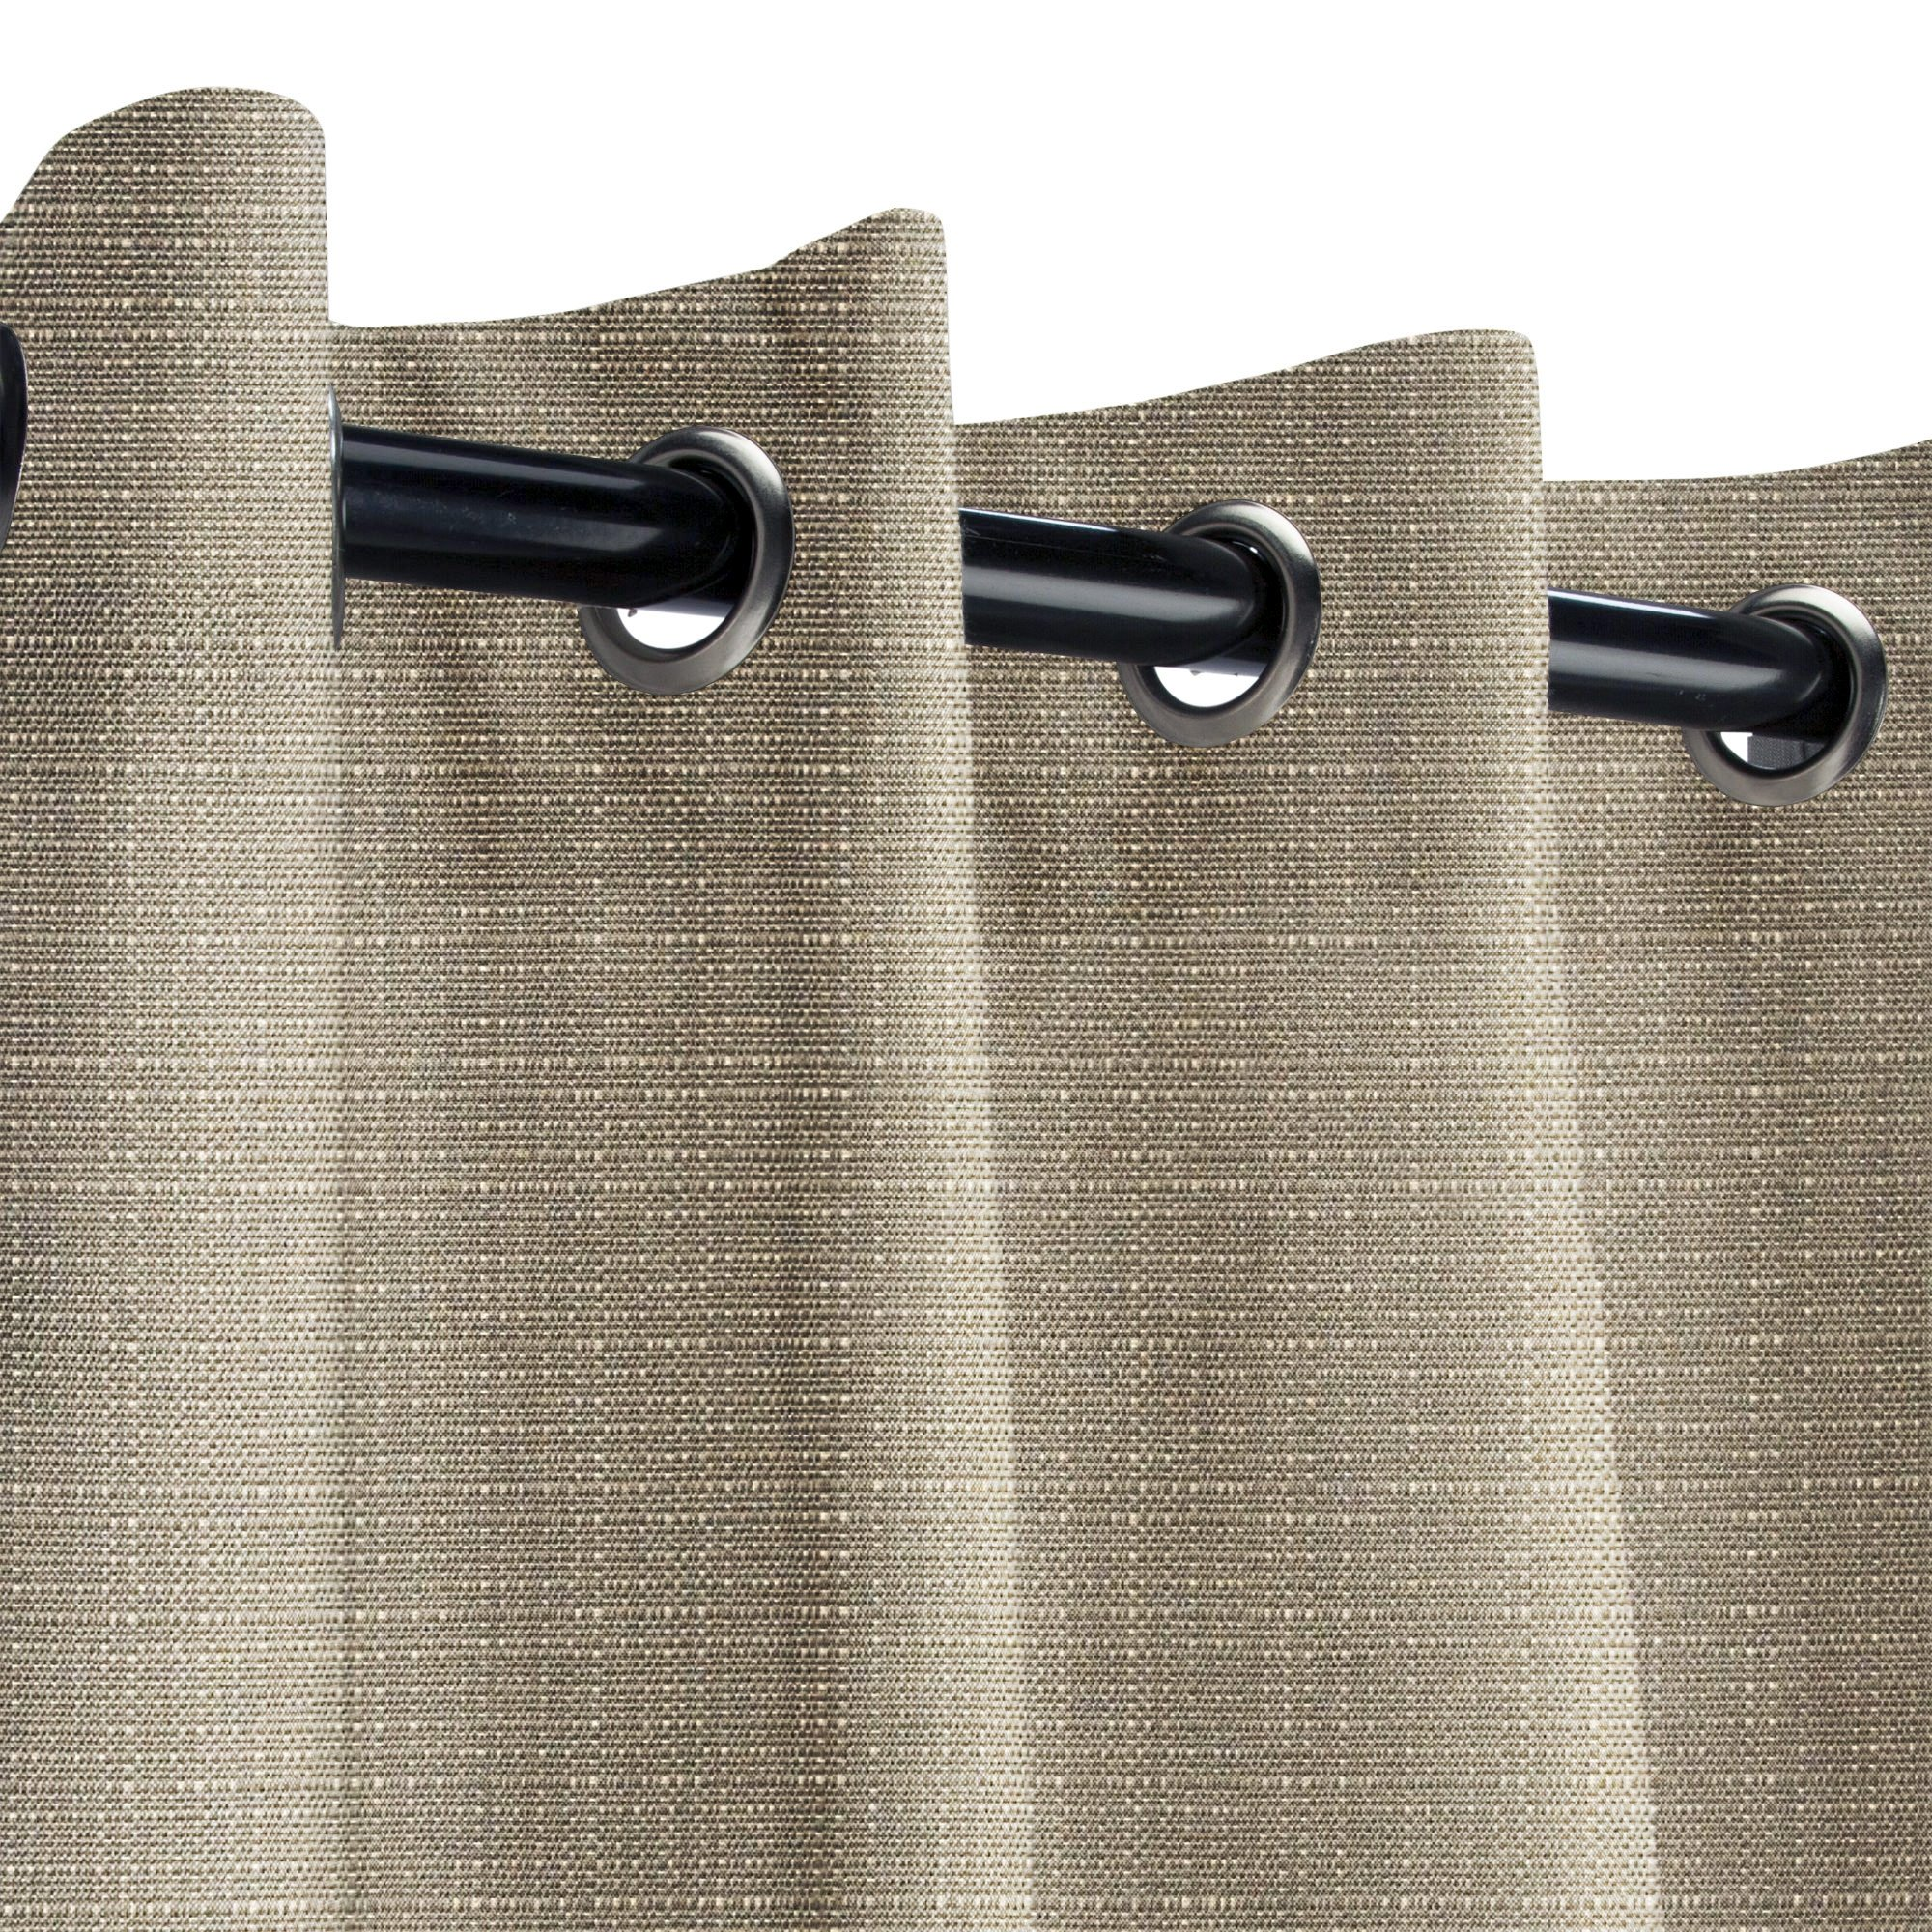 Sunbrella Linen Taupe Outdoor Curtain with Nickel Grommets 50 in. Wide x 108 in. Long